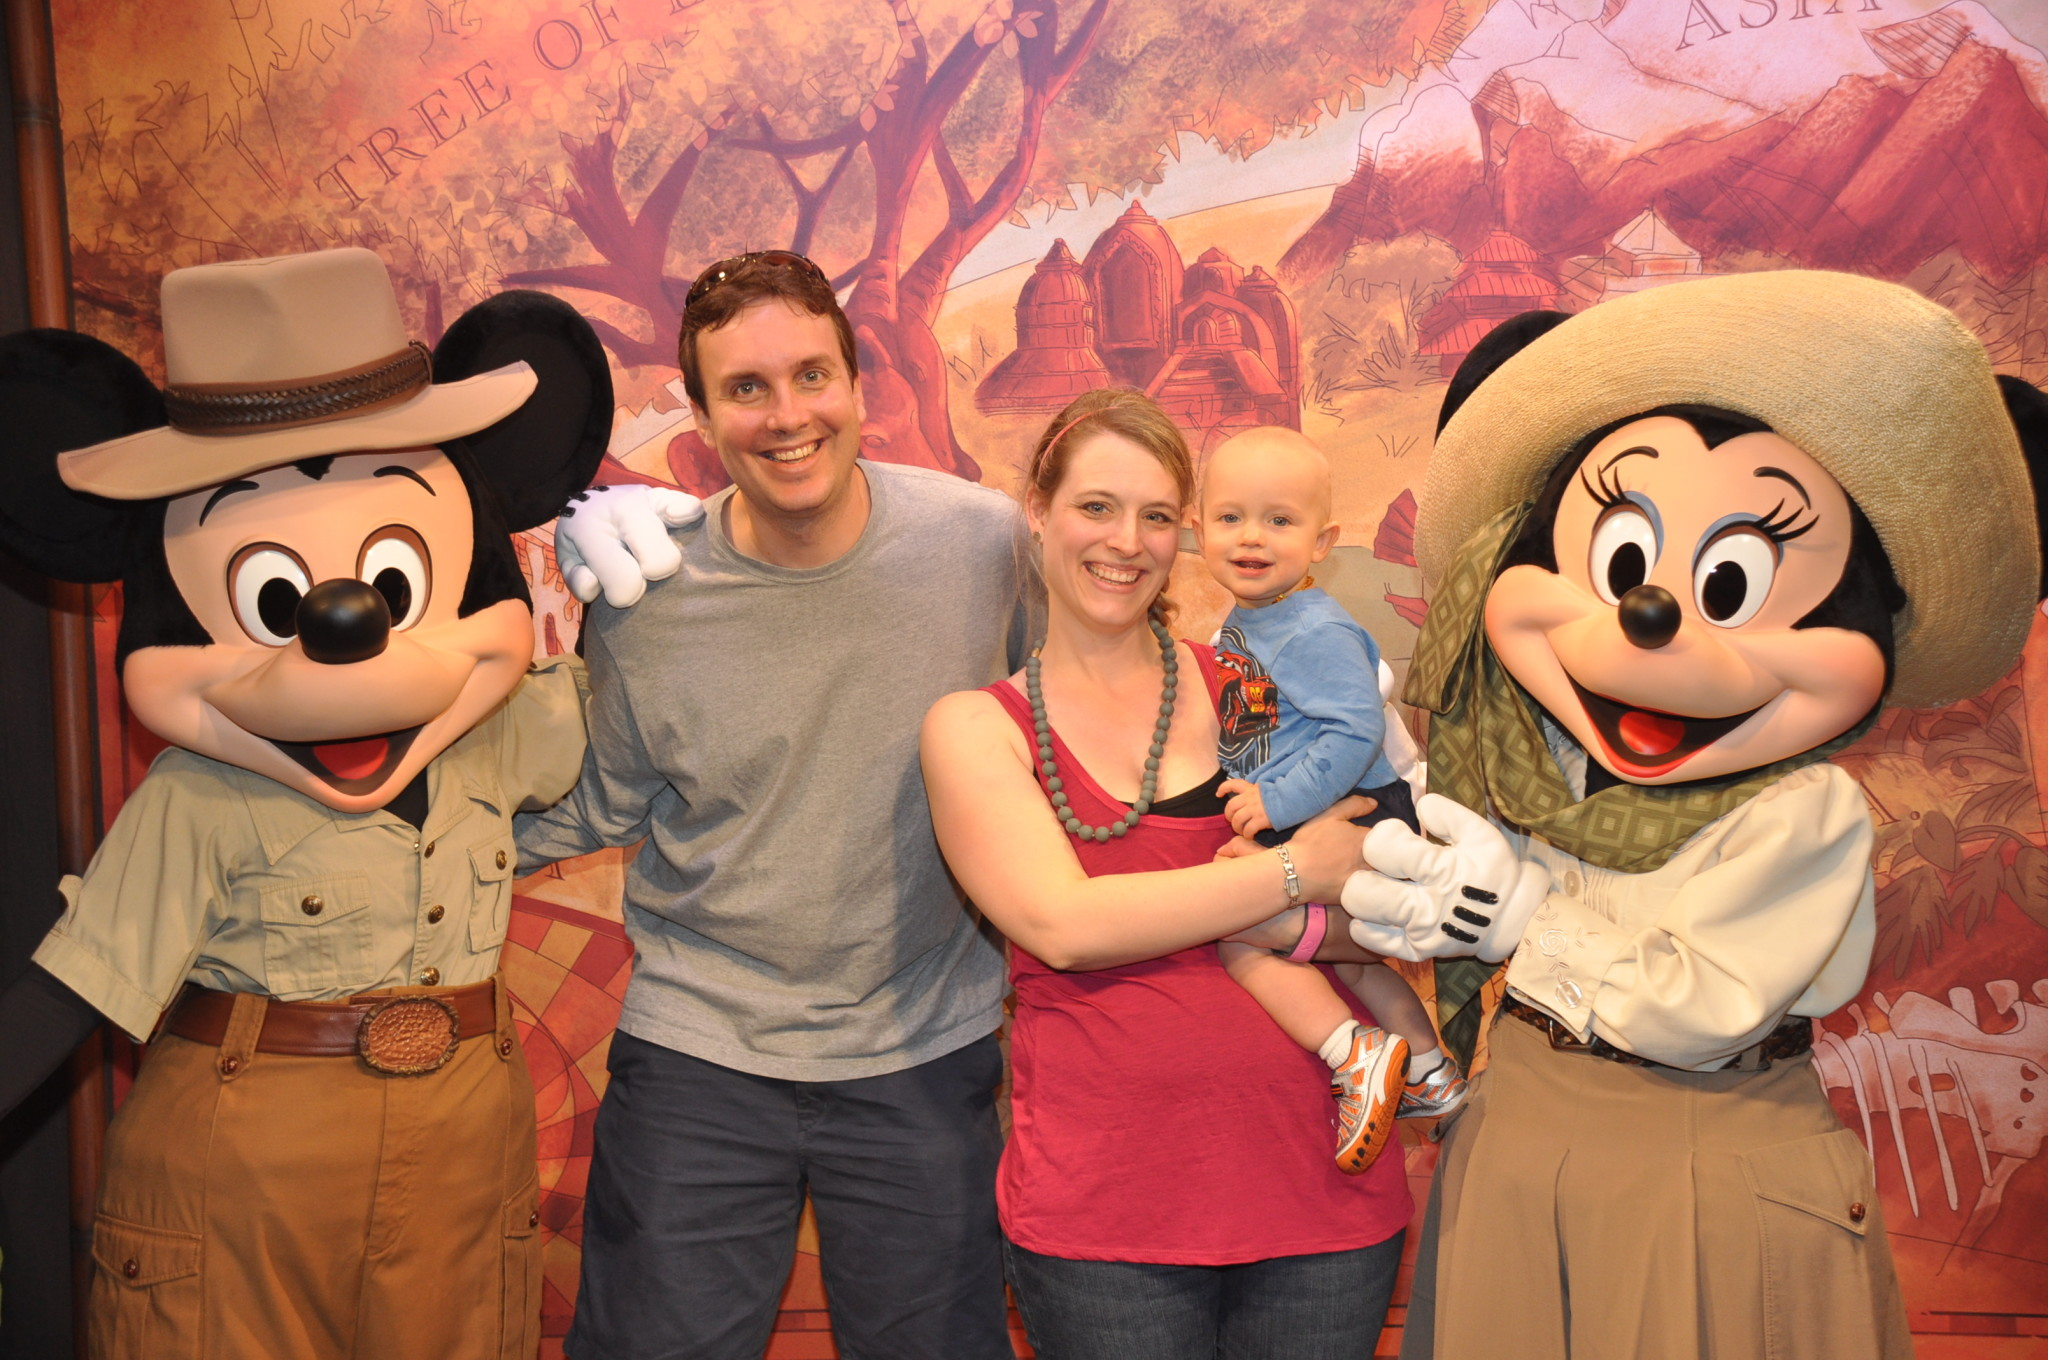 7 tips to make the most of disney character meet and greets getting up close and personal with with real life disney characters from your favorite disney stories television shows and movies can be one of the m4hsunfo